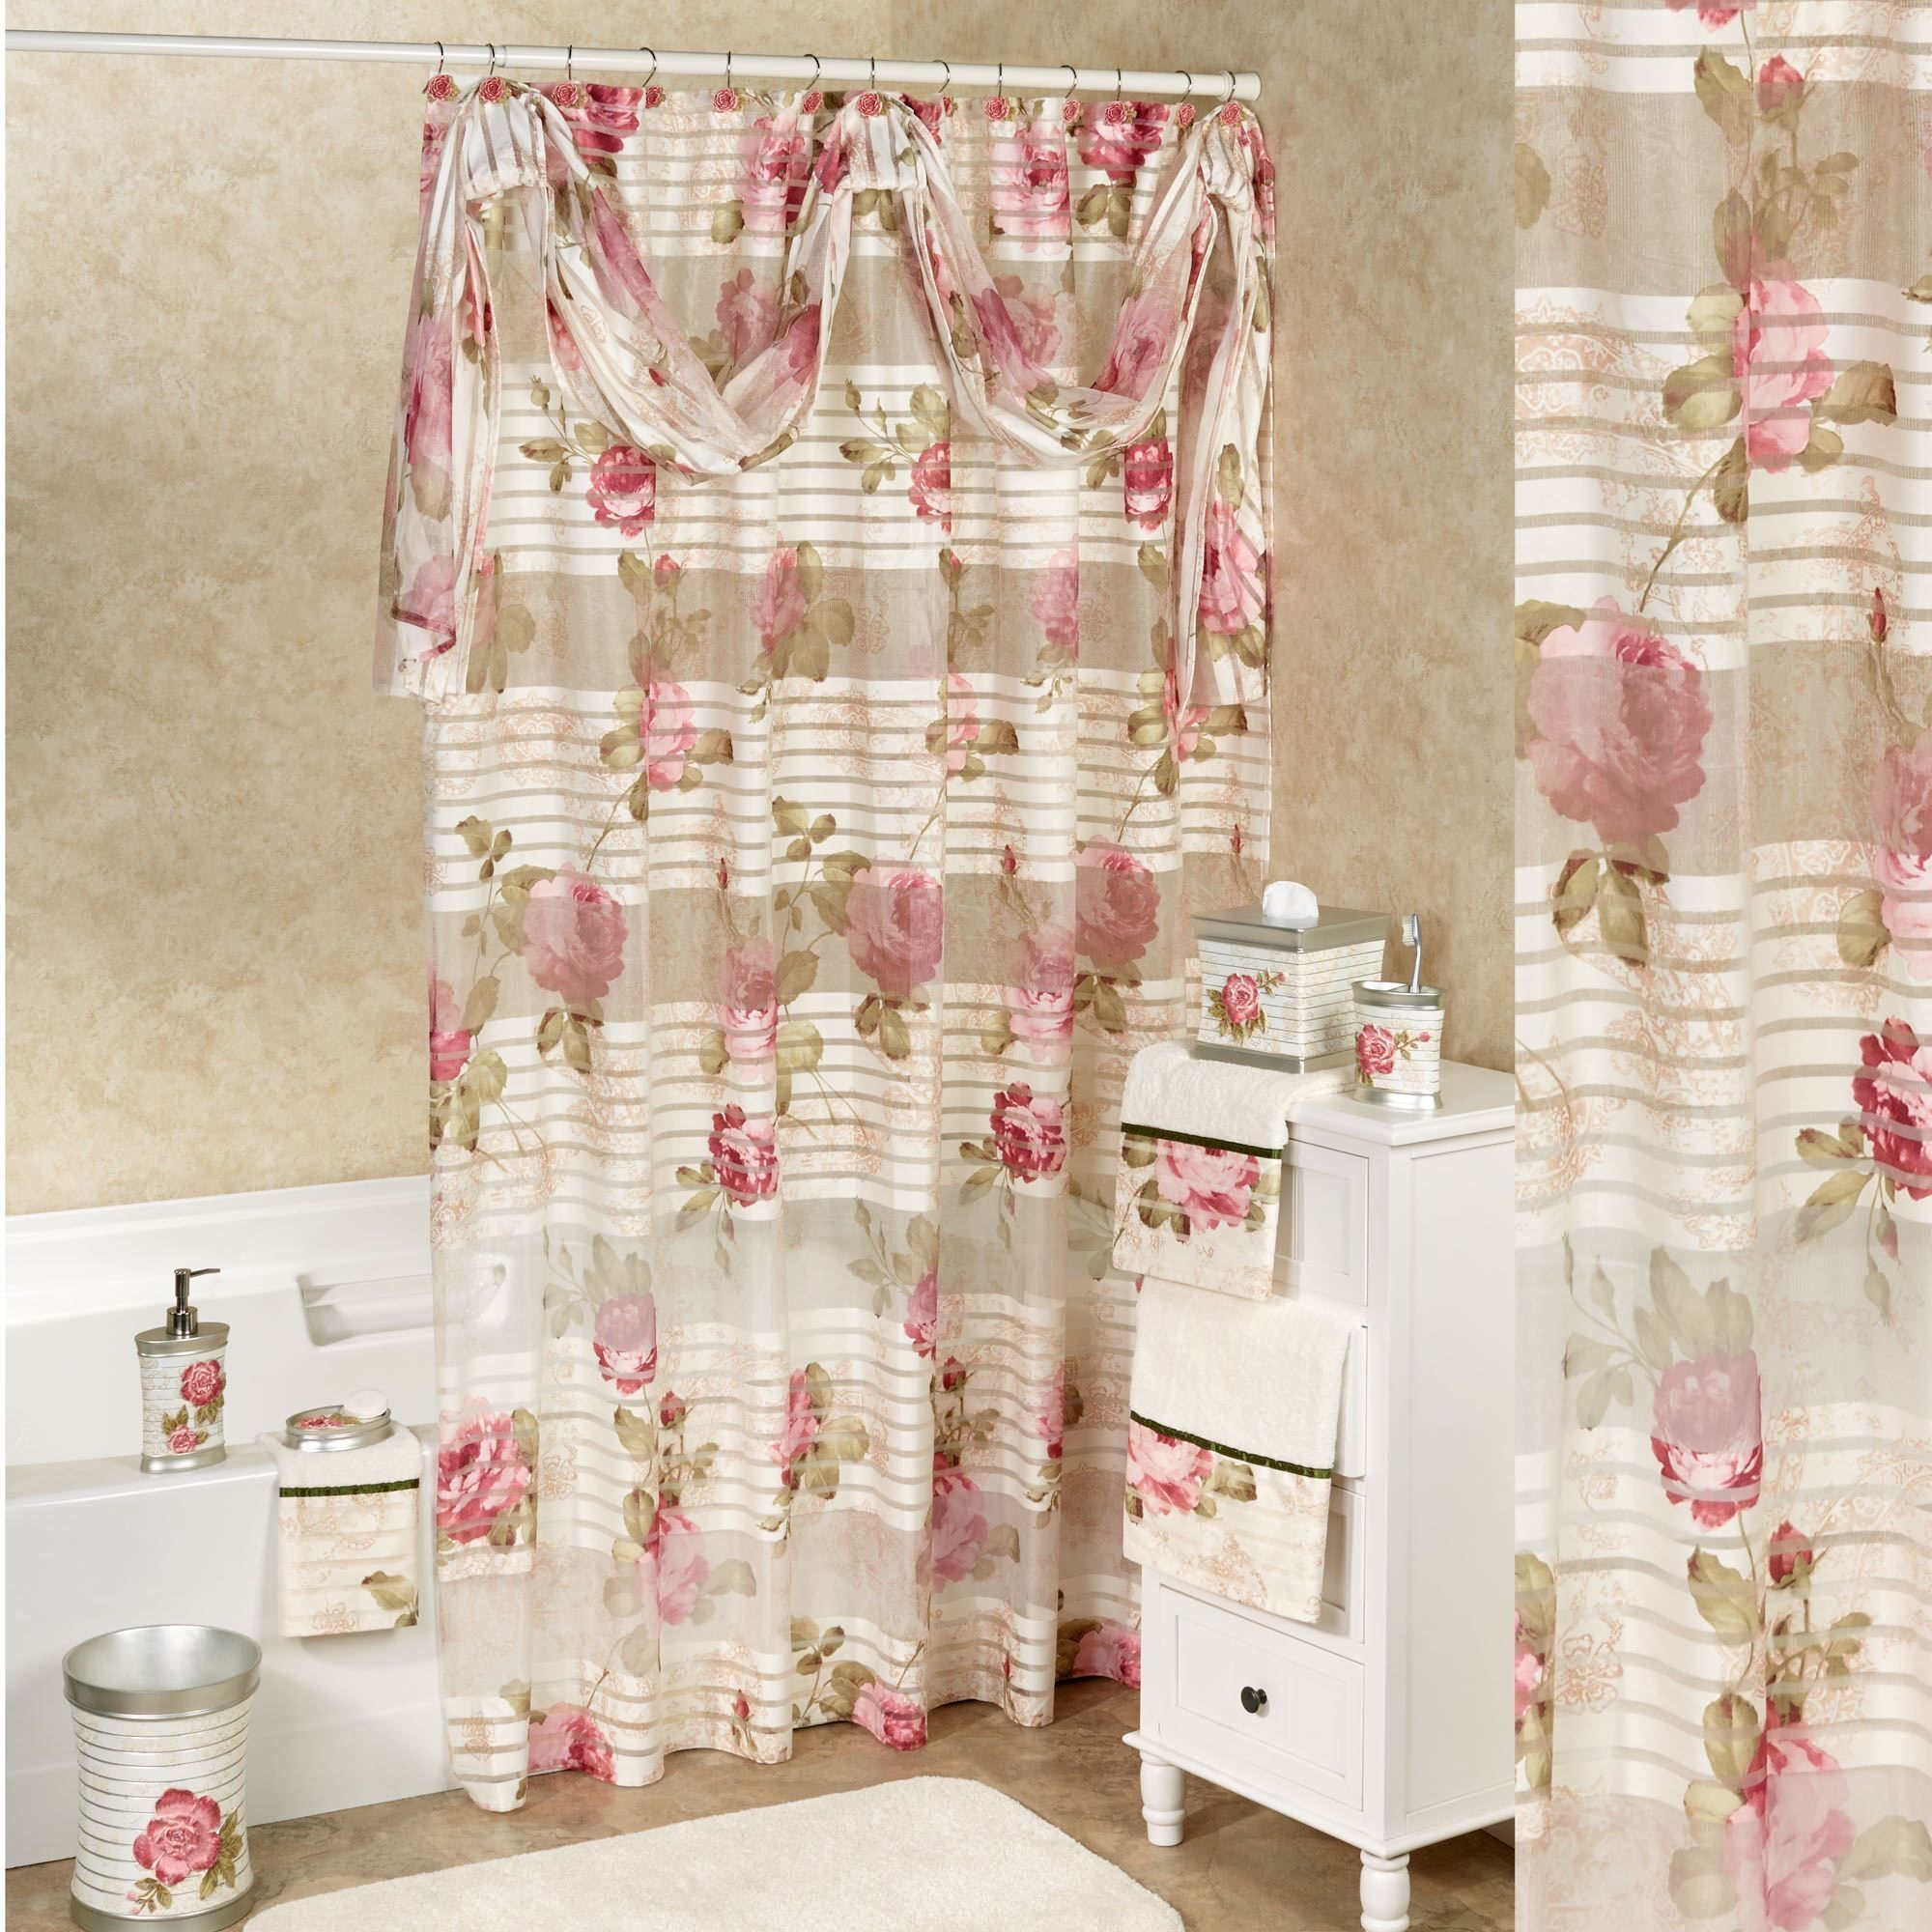 Vintage Rose Shower Curtain   There Are Lots Of Types Of Curtains To Select  From.